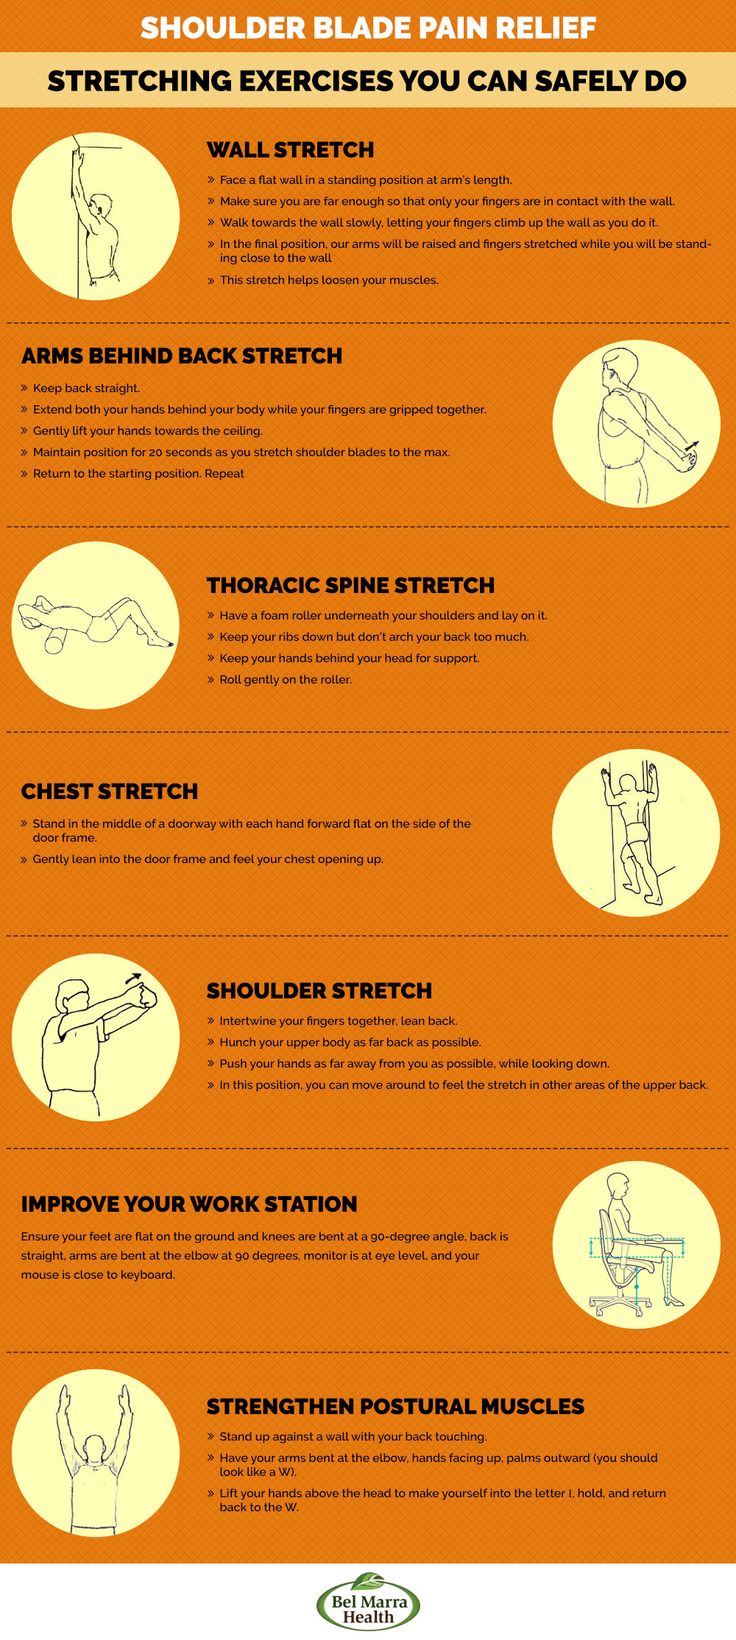 Easy and Quick Relief #Stretches for Shoulder Blade #Pain